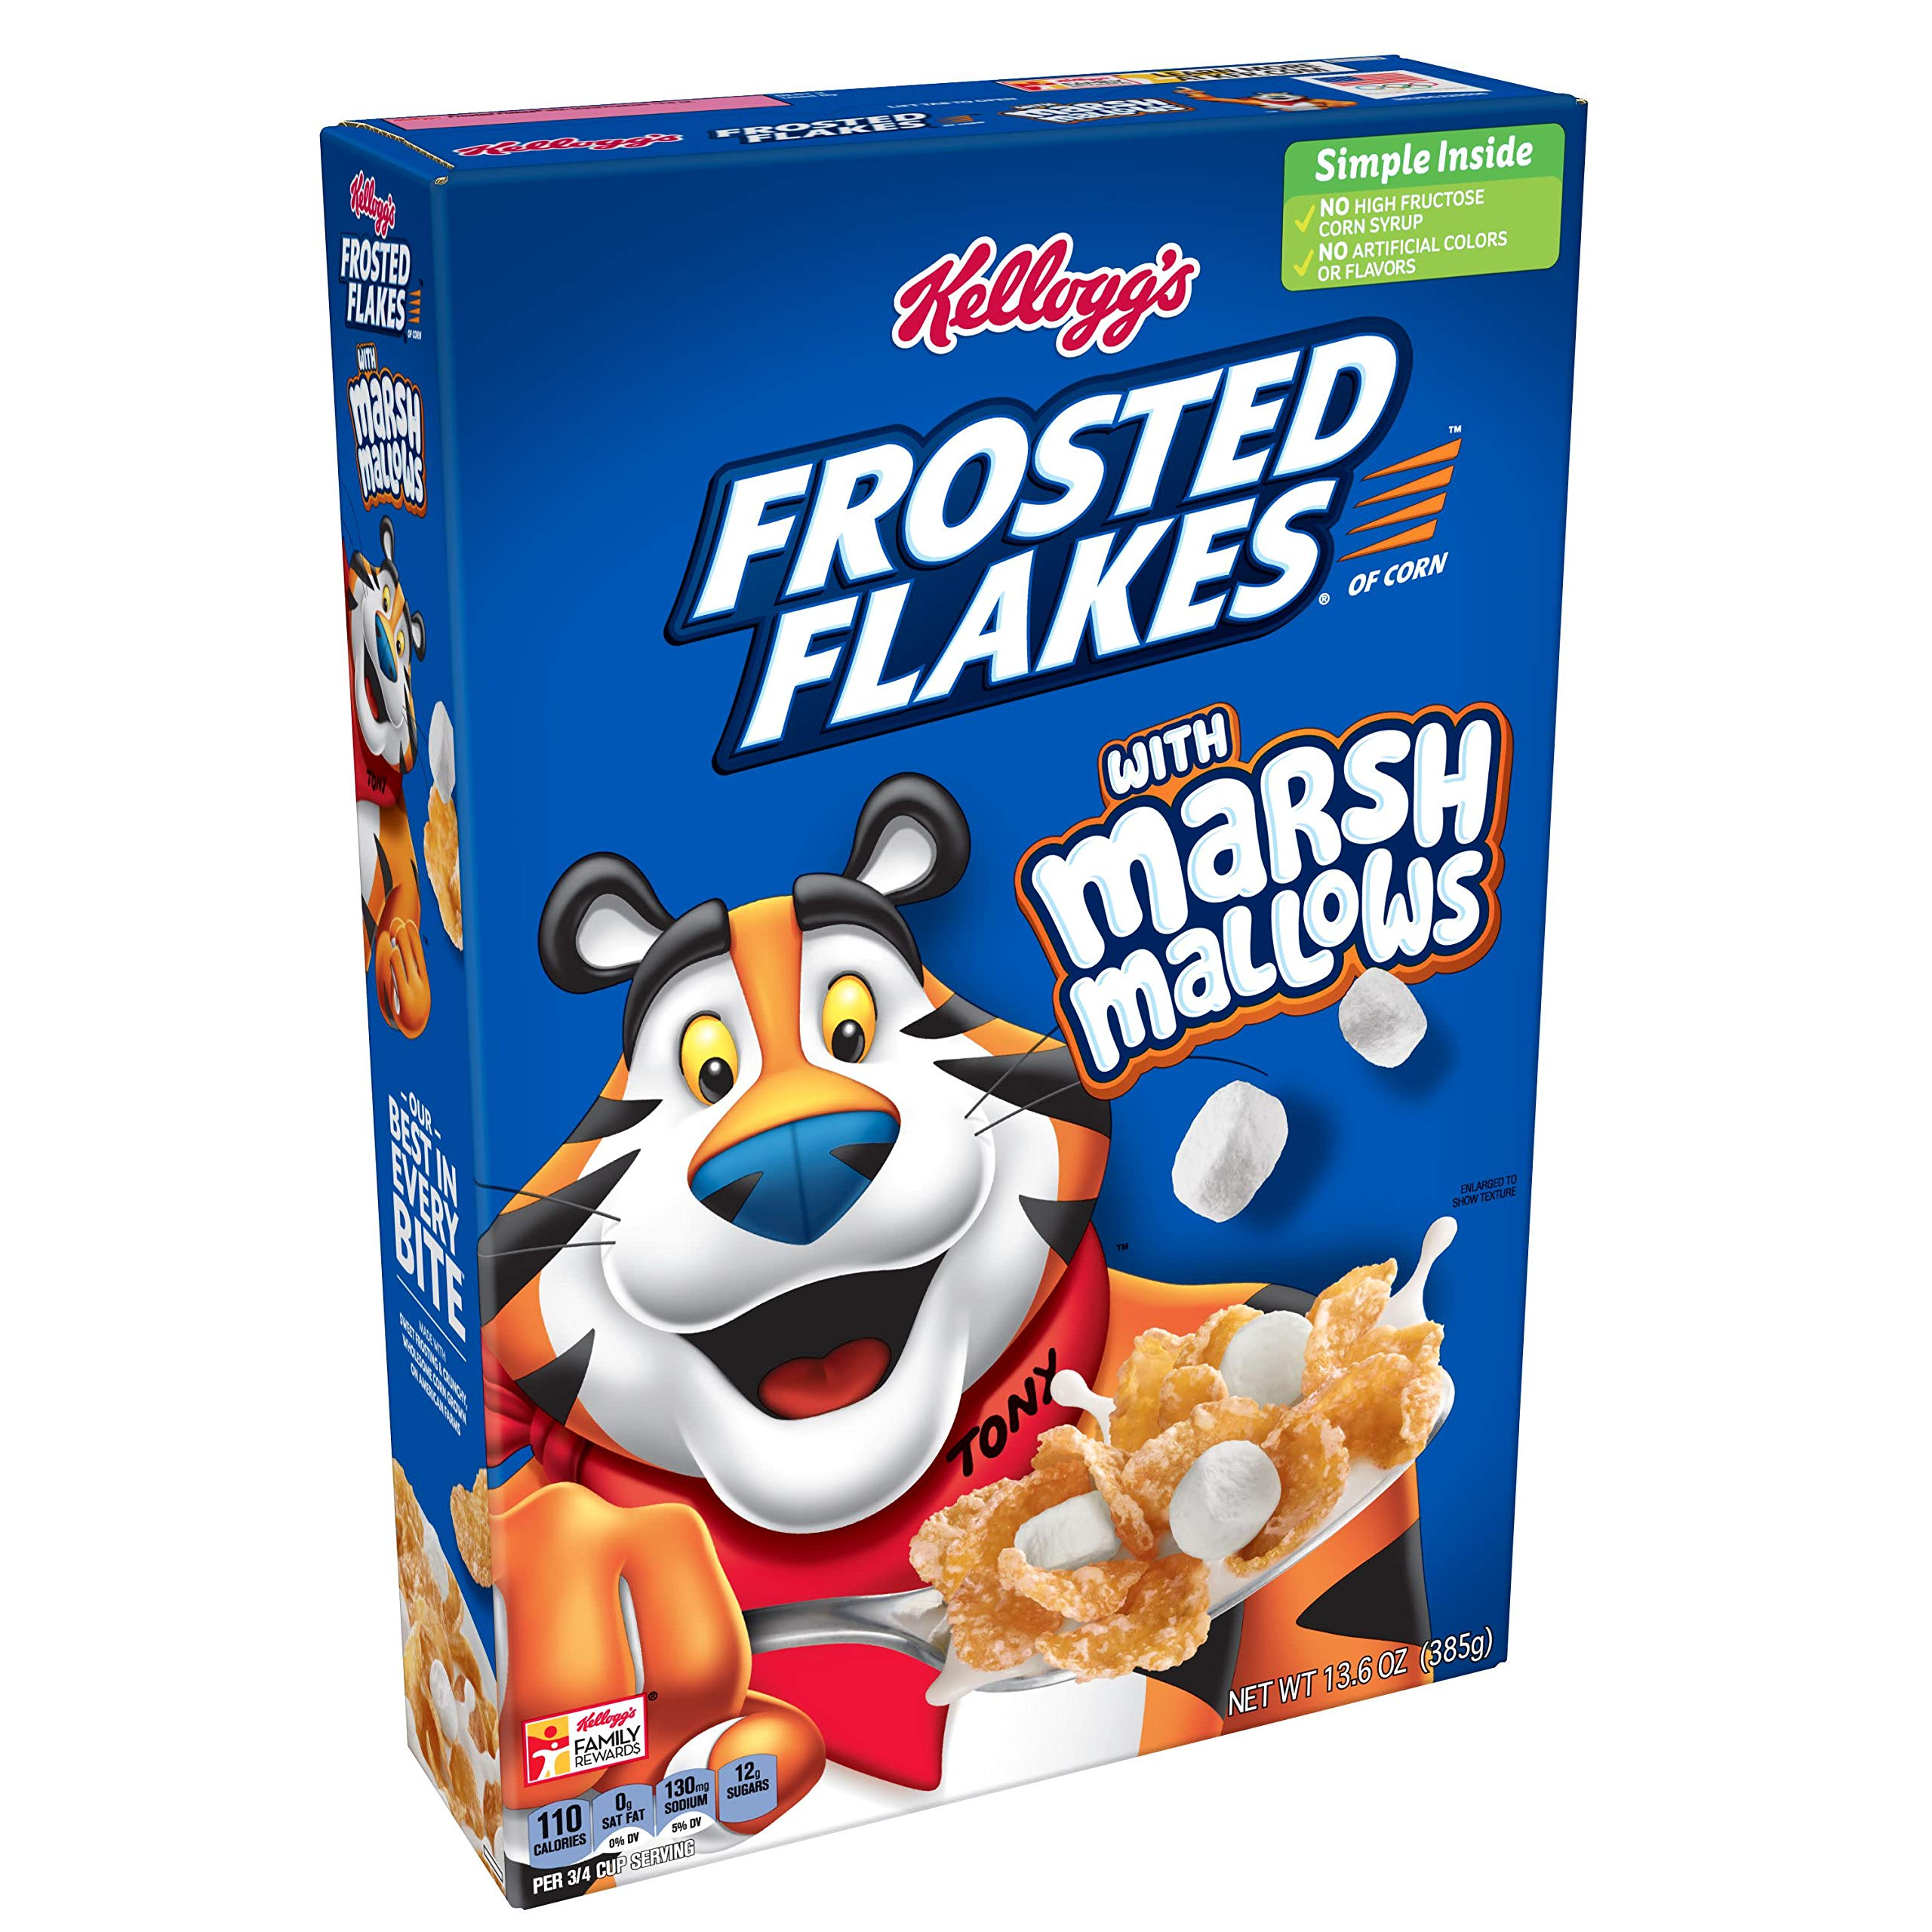 Frosted Flakes Cereals, Marshmallow, 16 Count